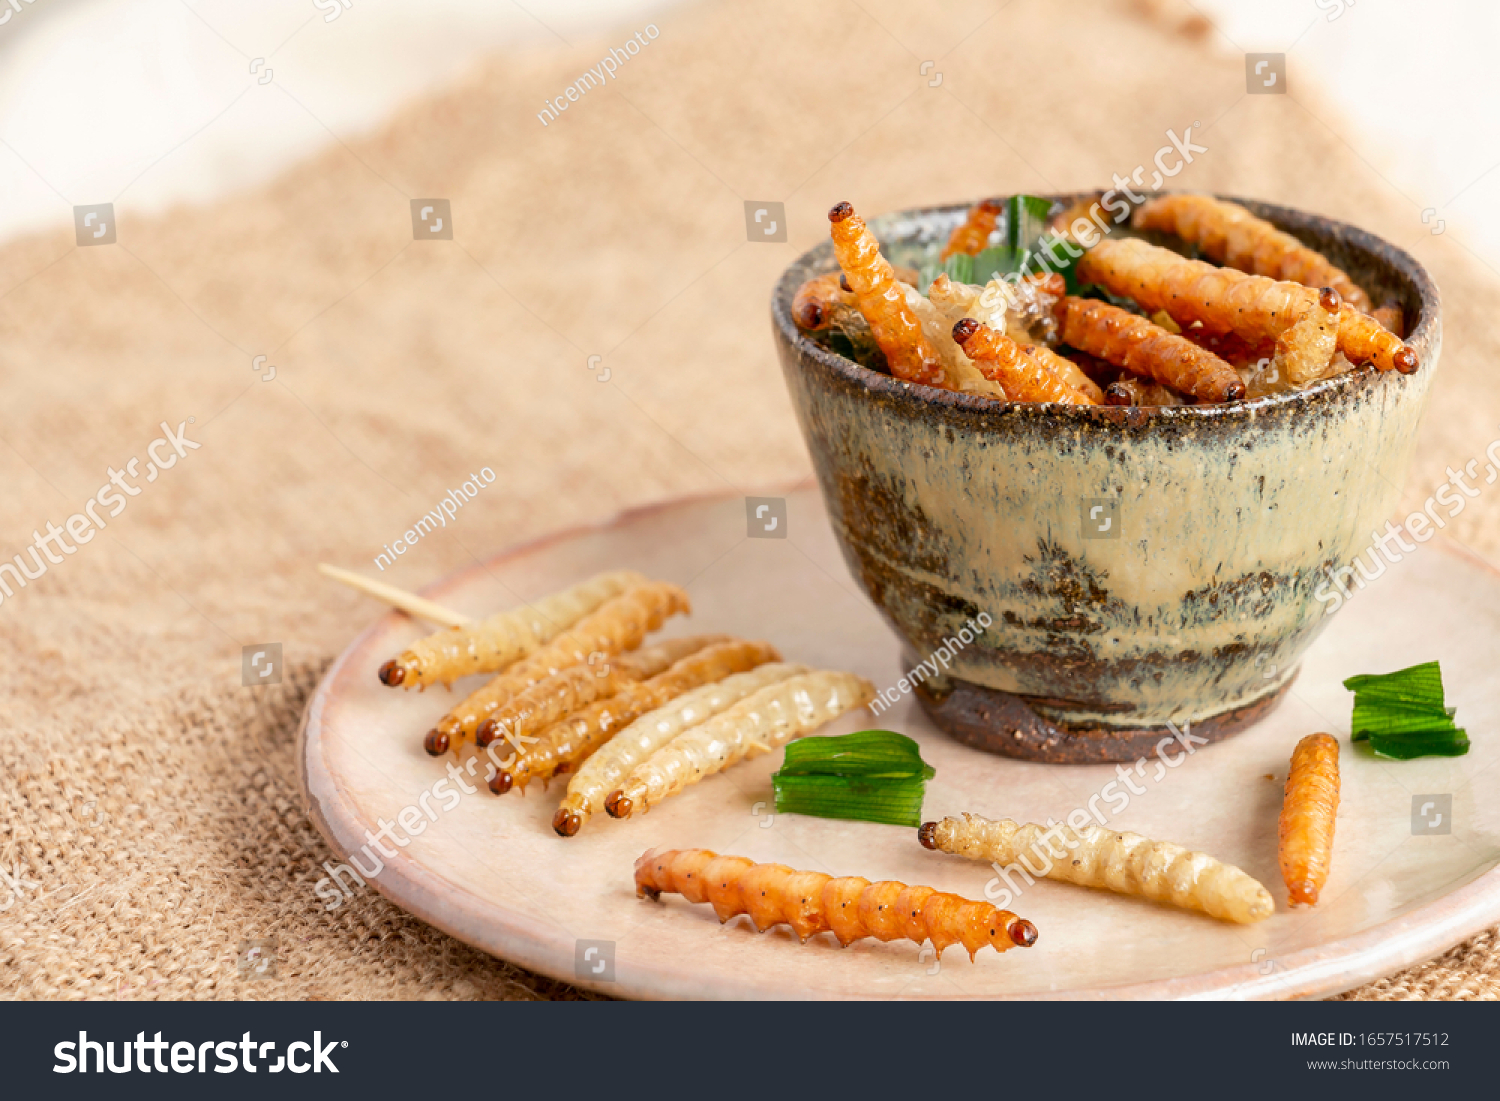 Food Insects: Bamboo worm or Bamboo Caterpillar insect fried crispy for eating as food items in bowl and plate ceramic on sackcloth, it is good source of protein edible for future food concept. #1657517512